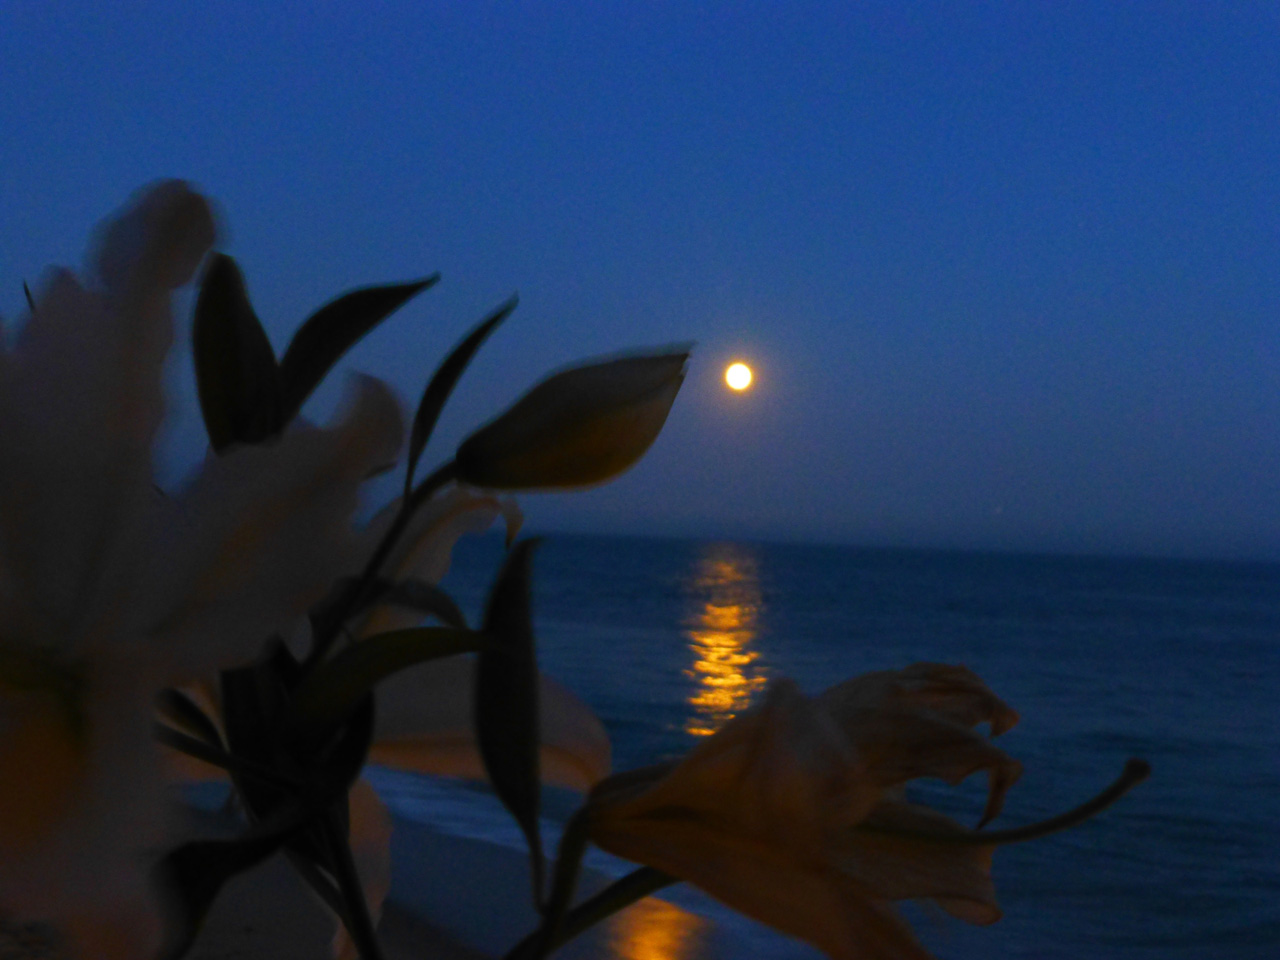 Supermoon Malibu, CA 2014 Photo by Laurie Lynn Stark